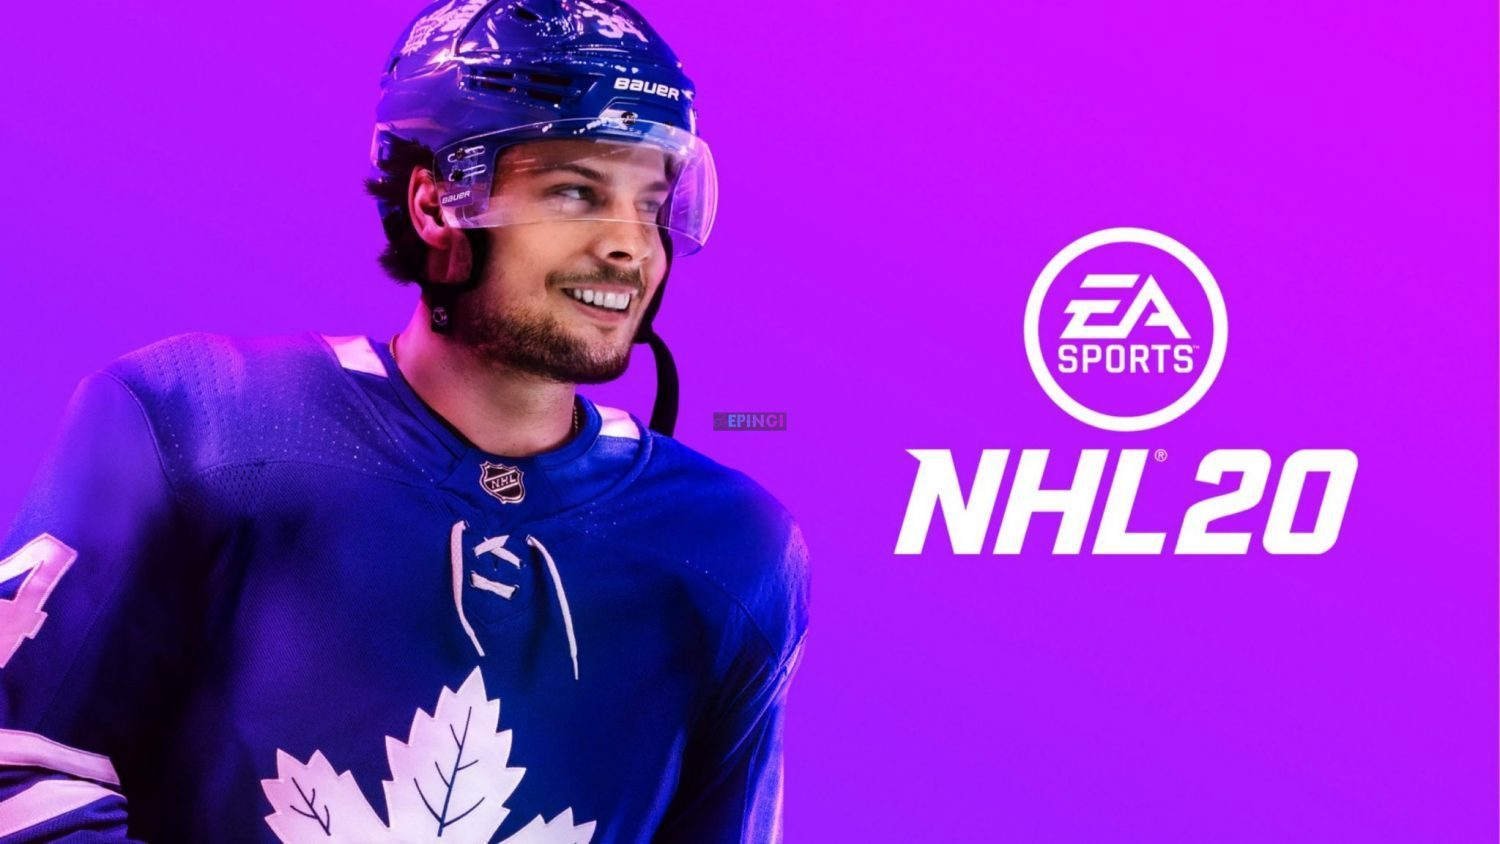 Nhl 15 pc version game download youtube.